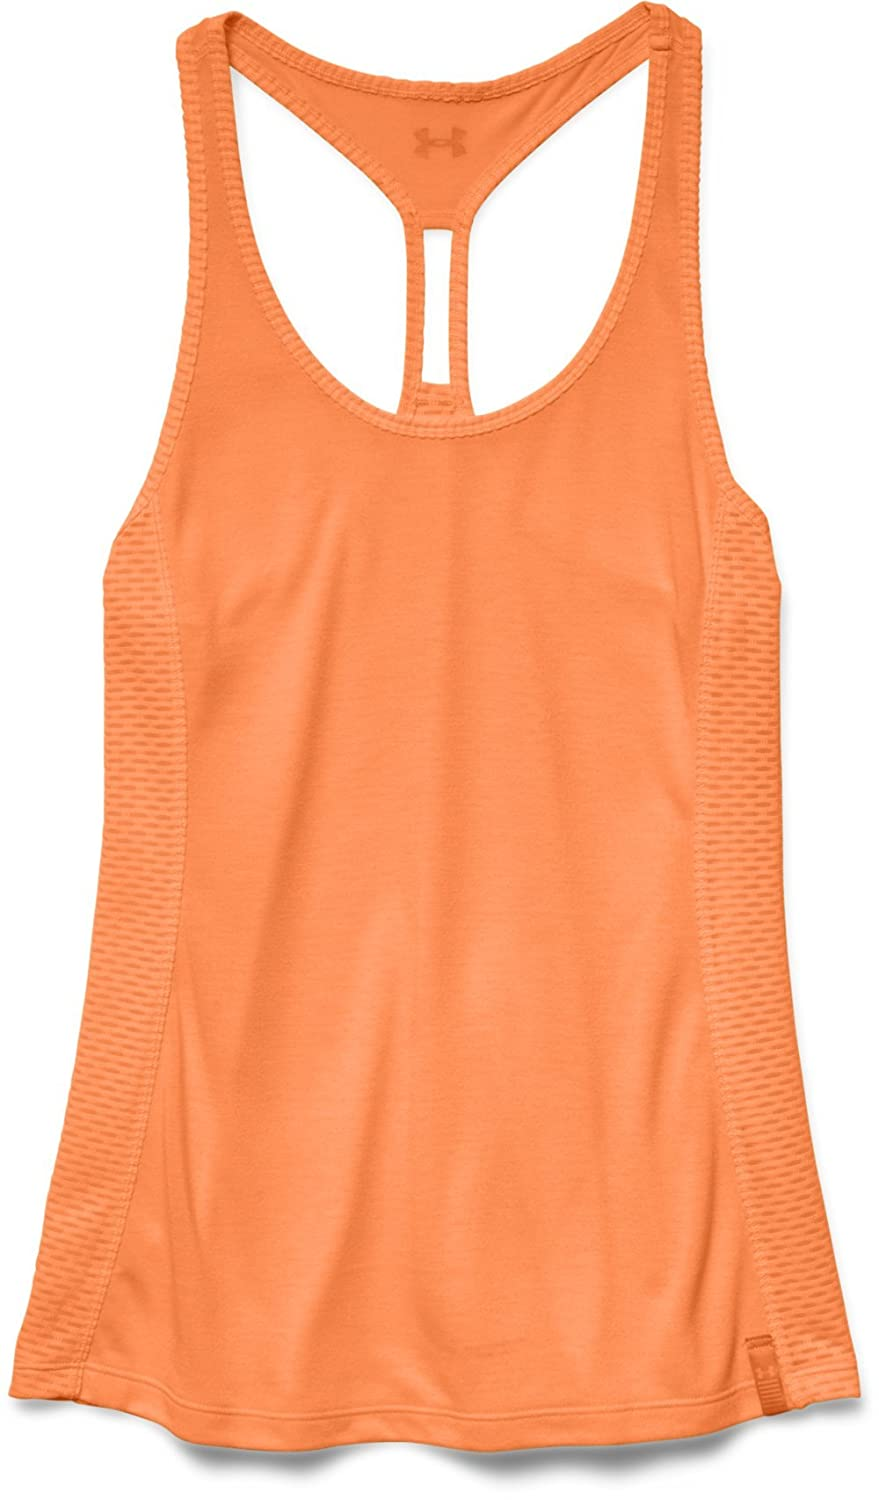 66b71e97d1 Under Armour Women's Fly-by Stretch Mesh Tank Top